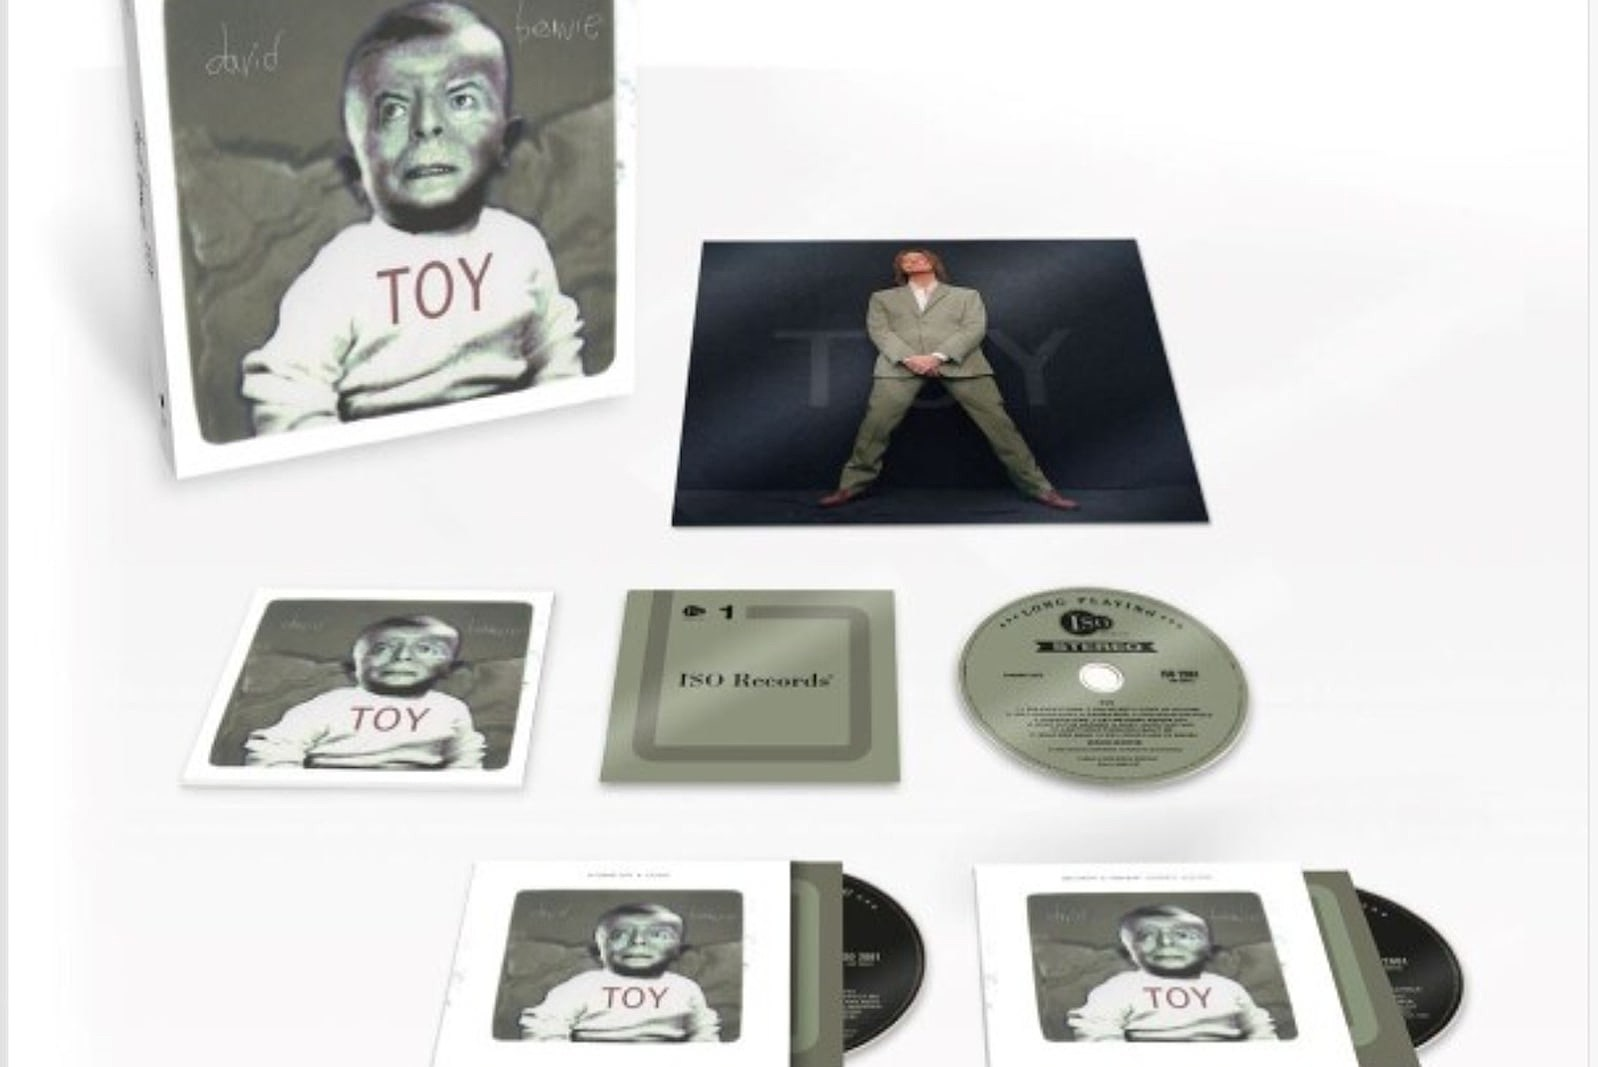 David Bowie's 'Lost' Album 'Toy' Set for Official Release